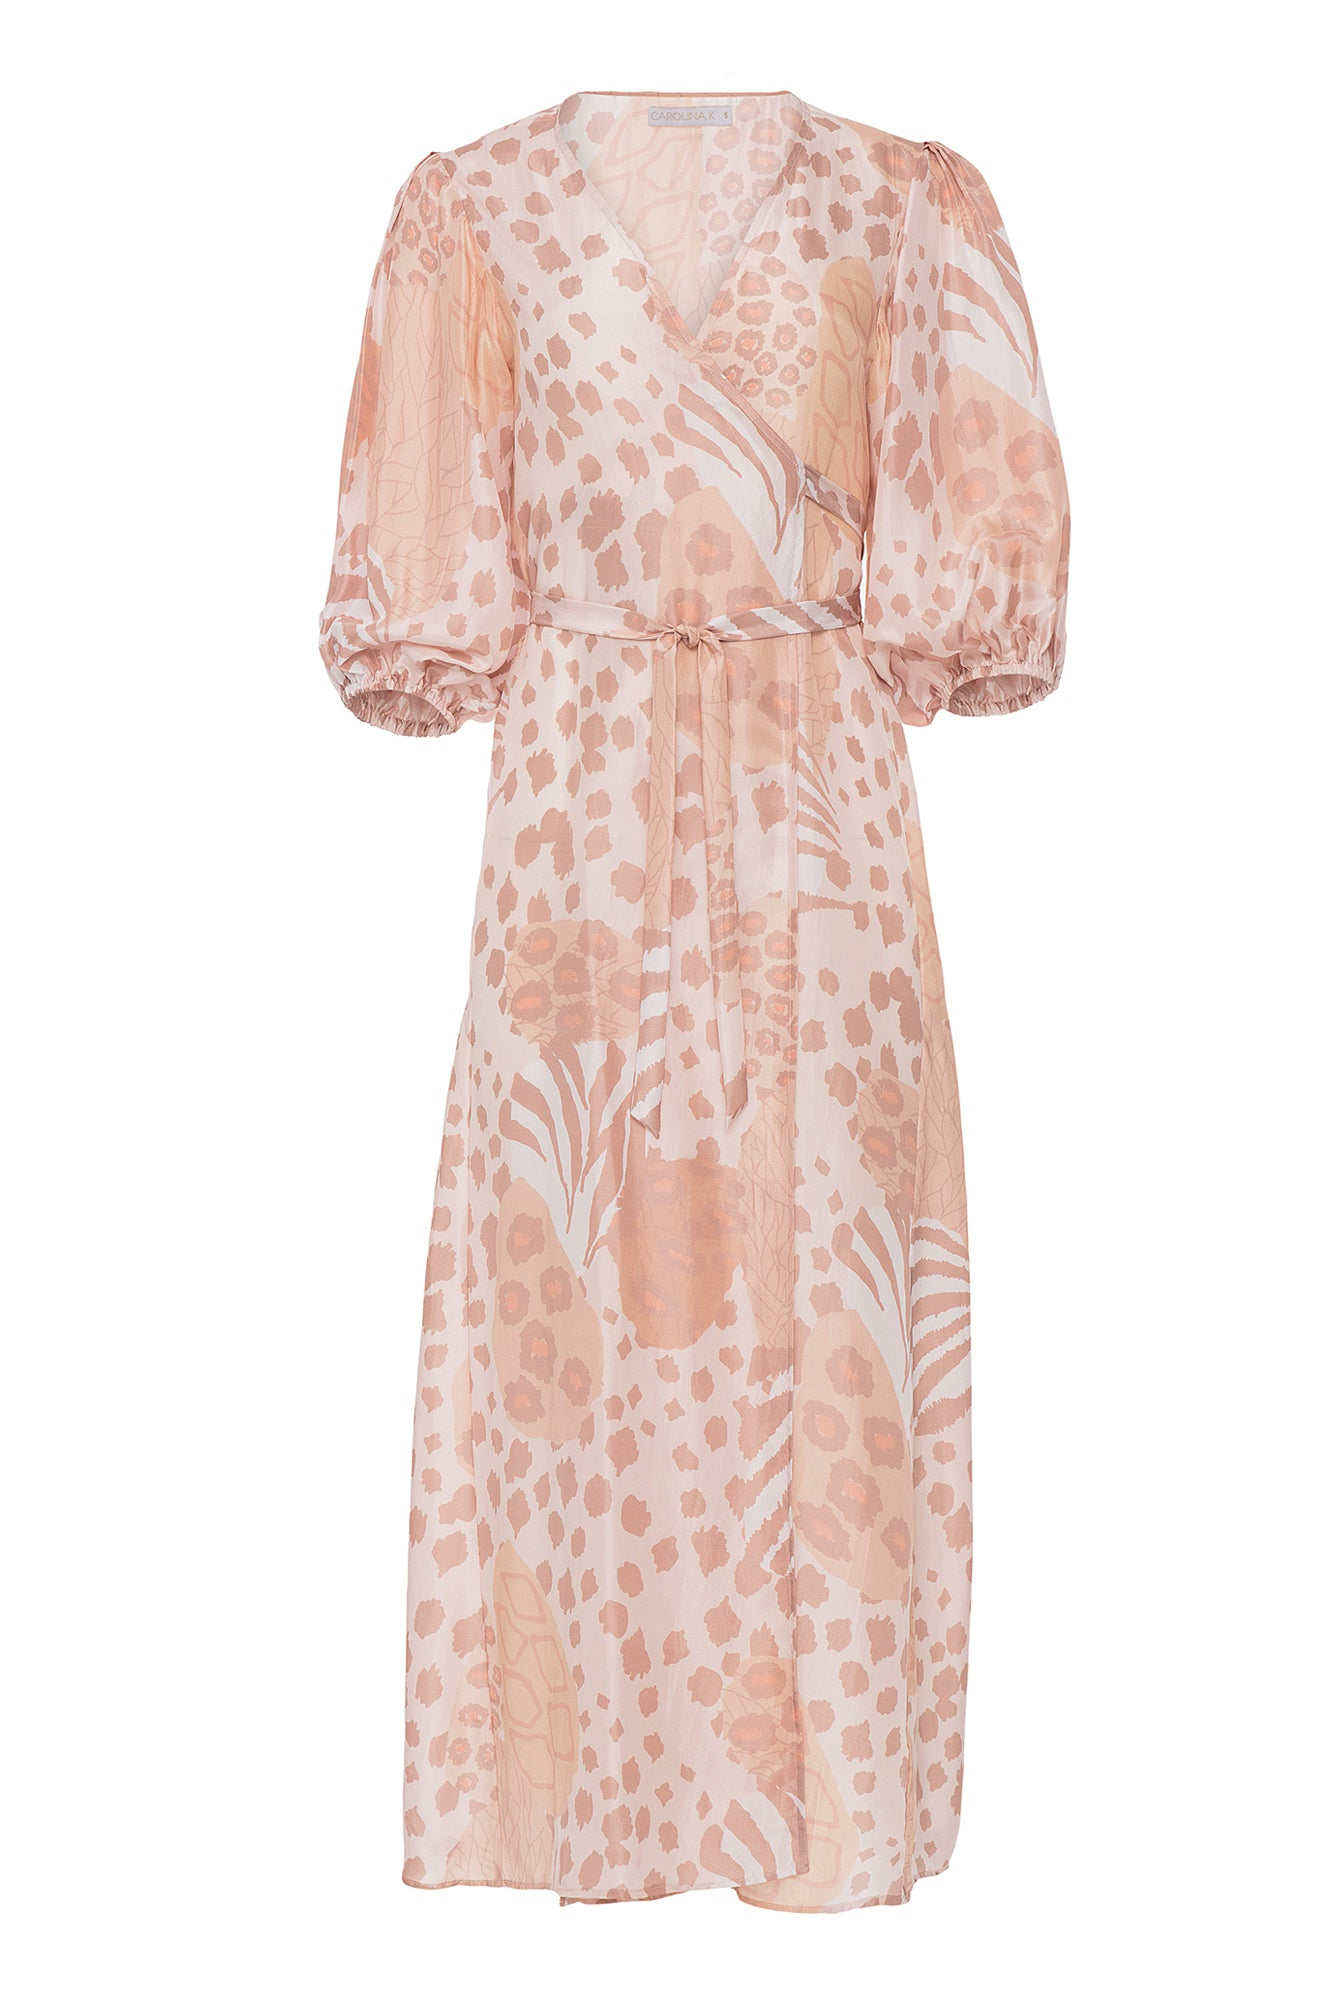 Carolina K Donna Robe Champagne Jungle